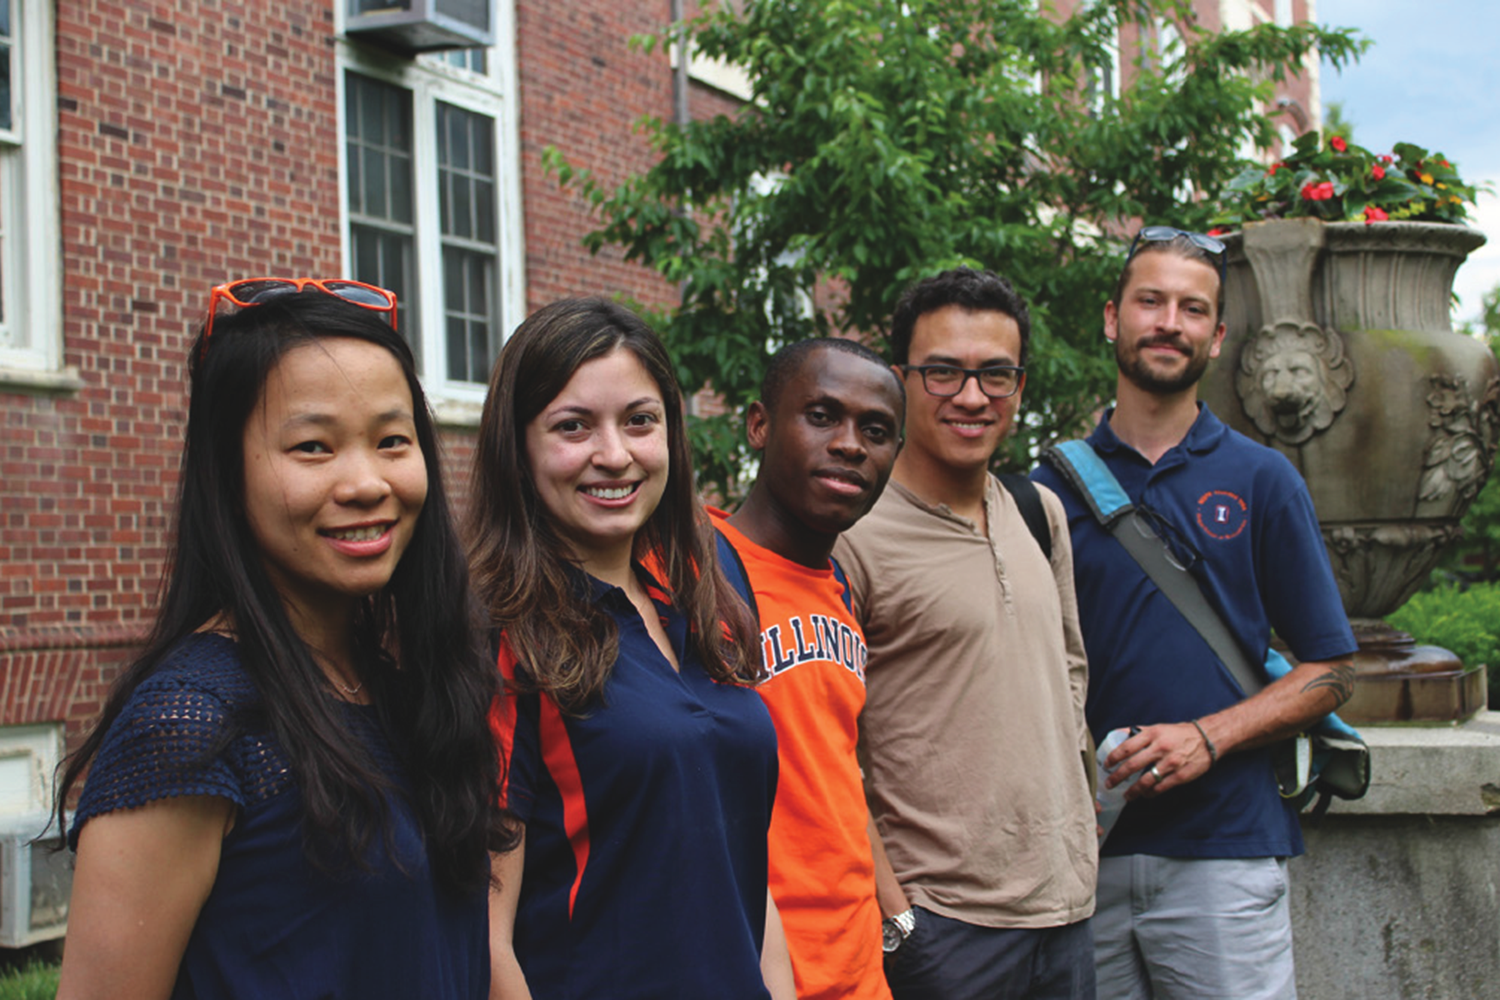 Incoming freshmen: Apply now for the Extension to ACES Scholarship!